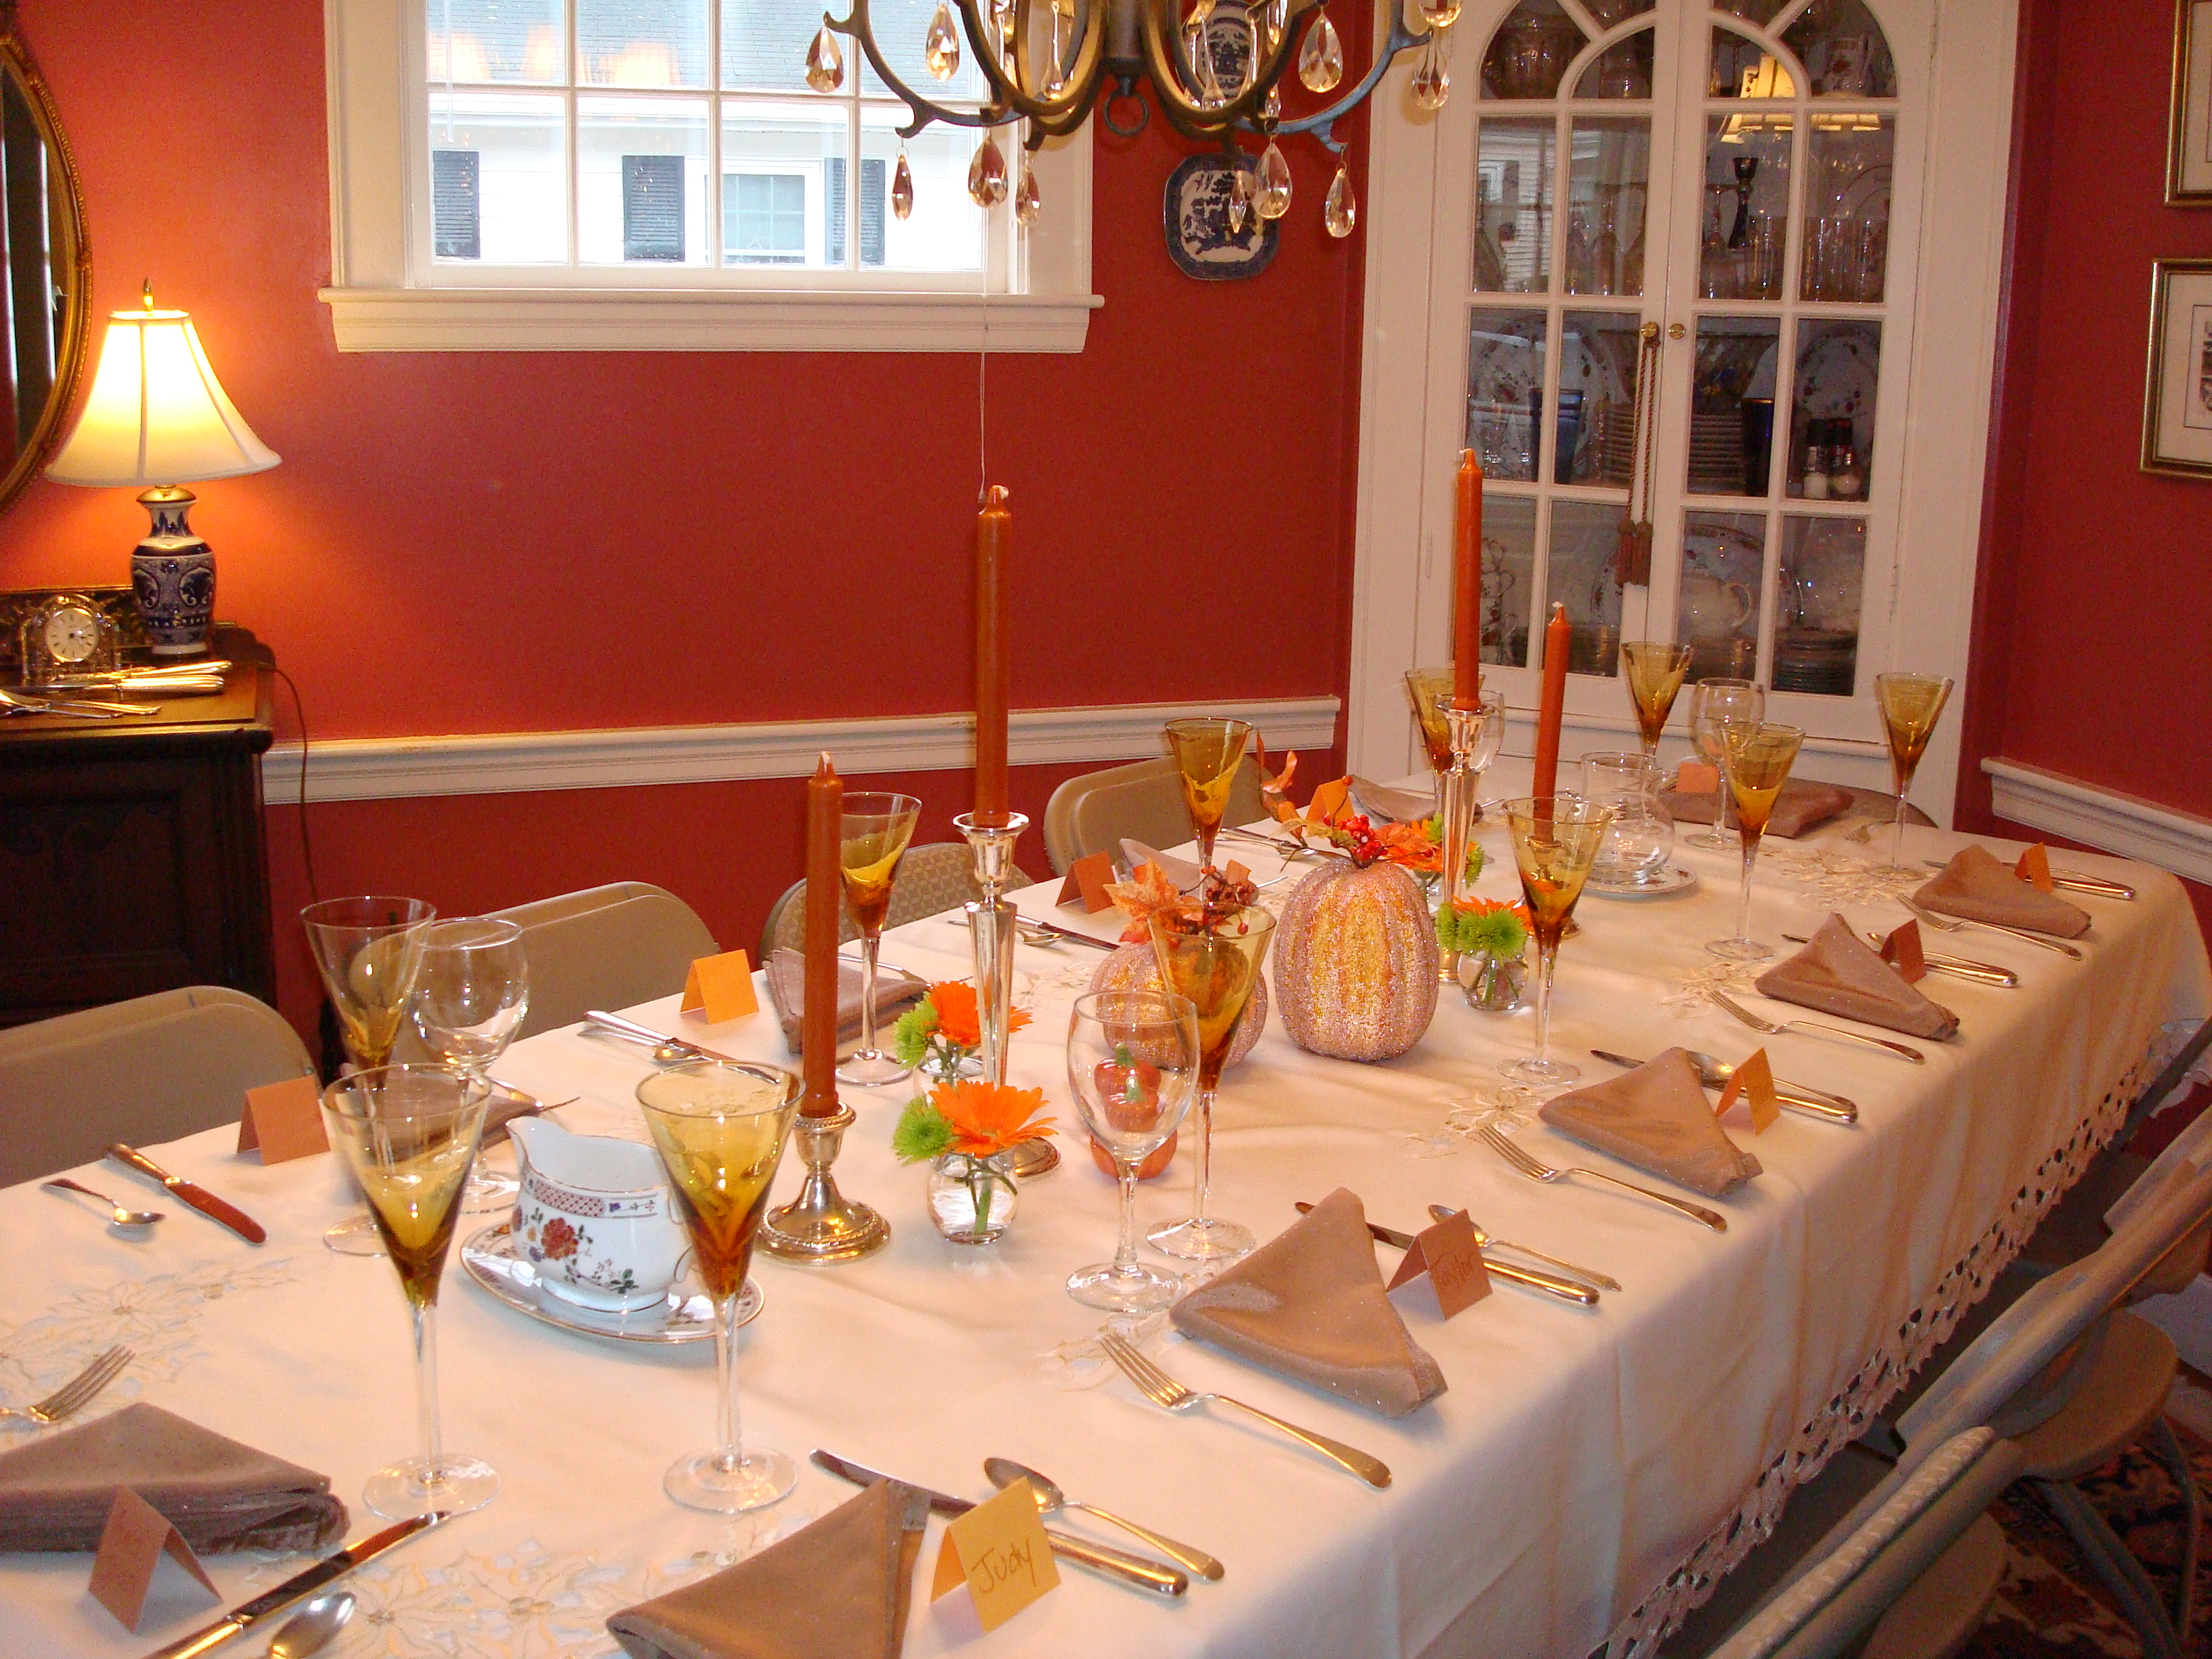 301 moved permanently How to decorate your house for thanksgiving